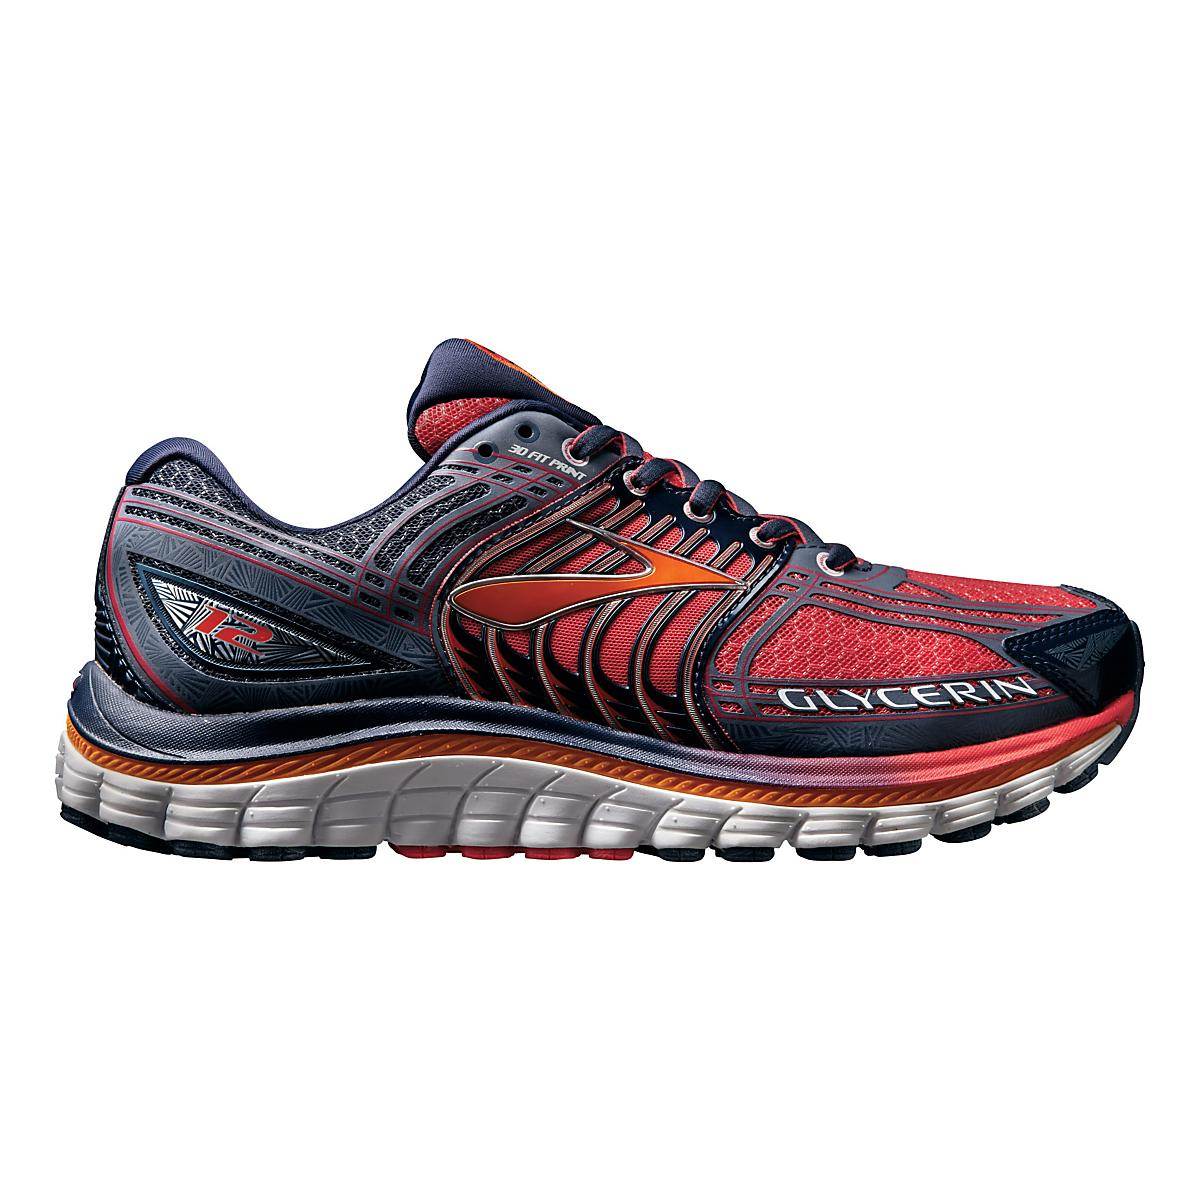 b4a06ce10ef Womens Brooks Glycerin 12 Running Shoe at Road Runner Sports